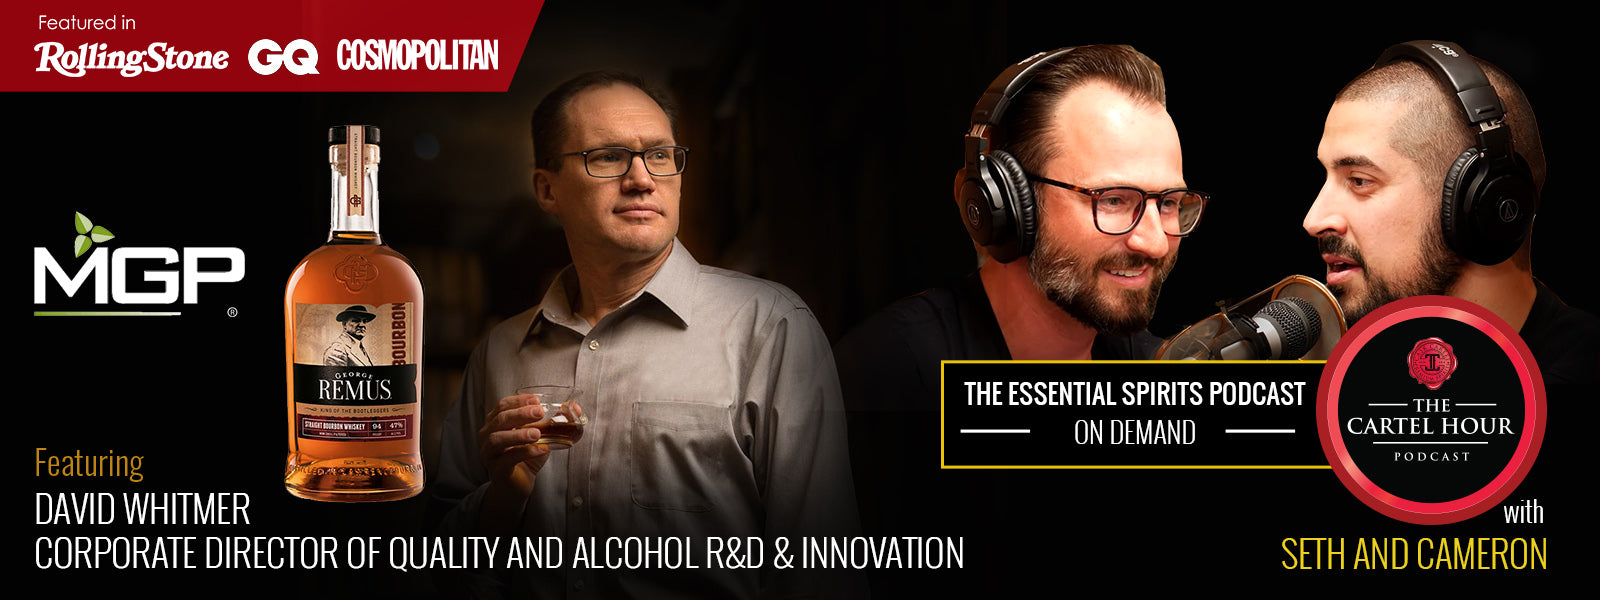 Cartel Hour Podcast Reviews, Whiskey, Bourbon, Tequila, Rum, Gin and Vodka Online at CaskCartel.com